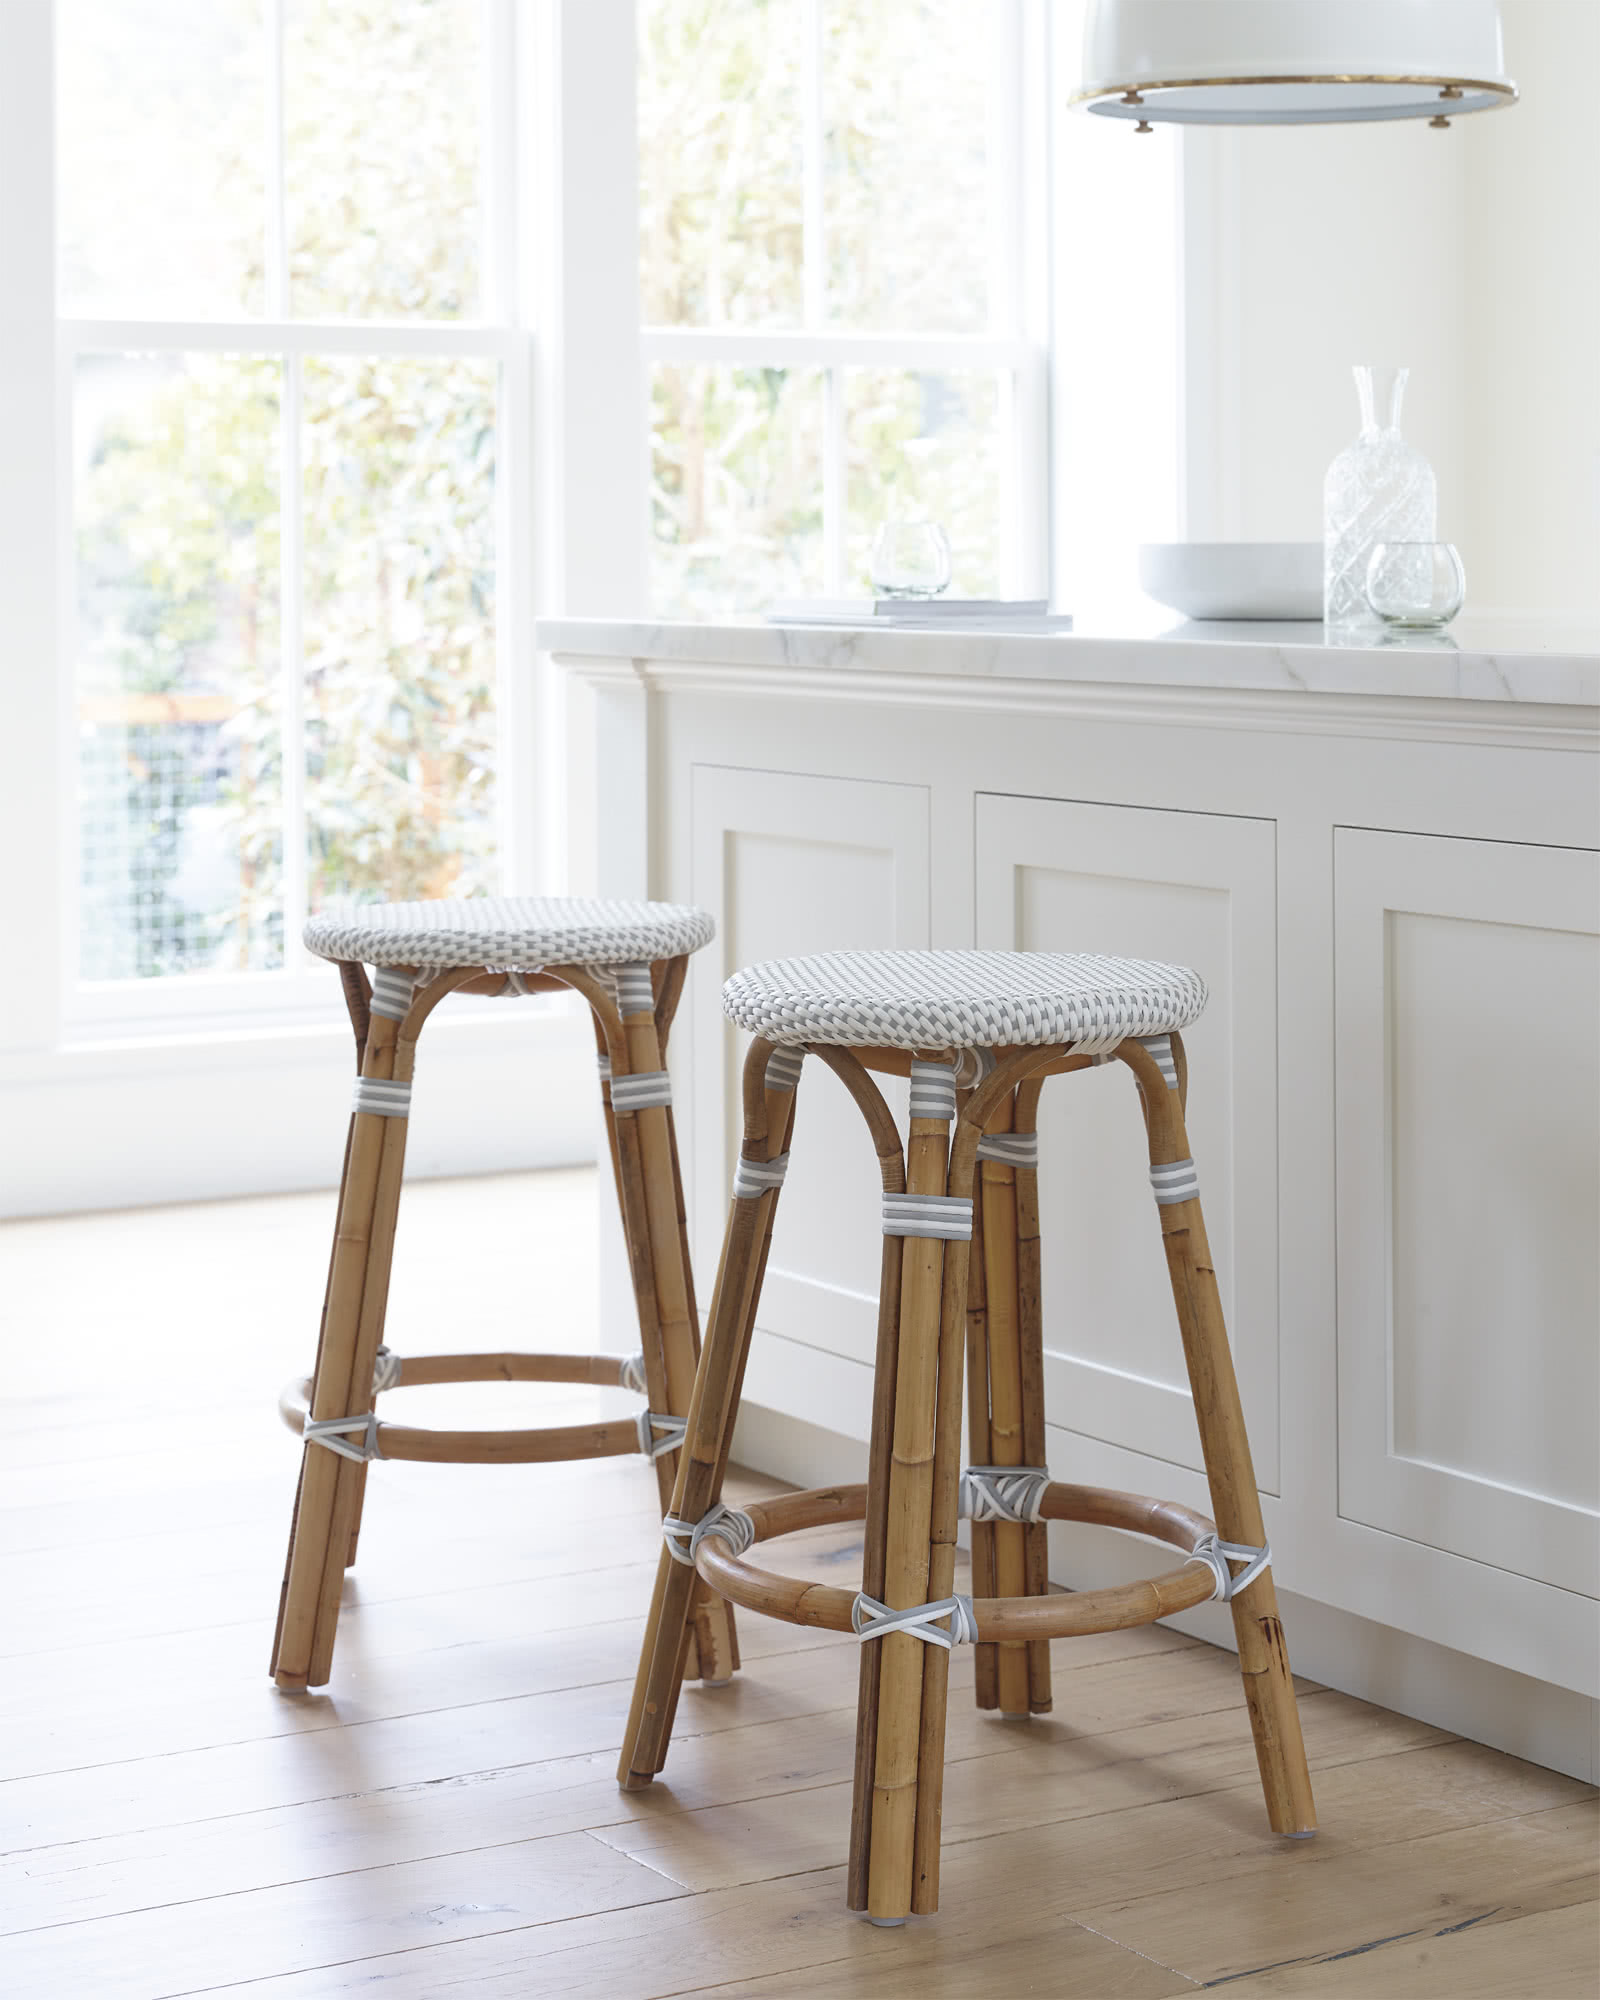 Riviera Backless Counter Stool,